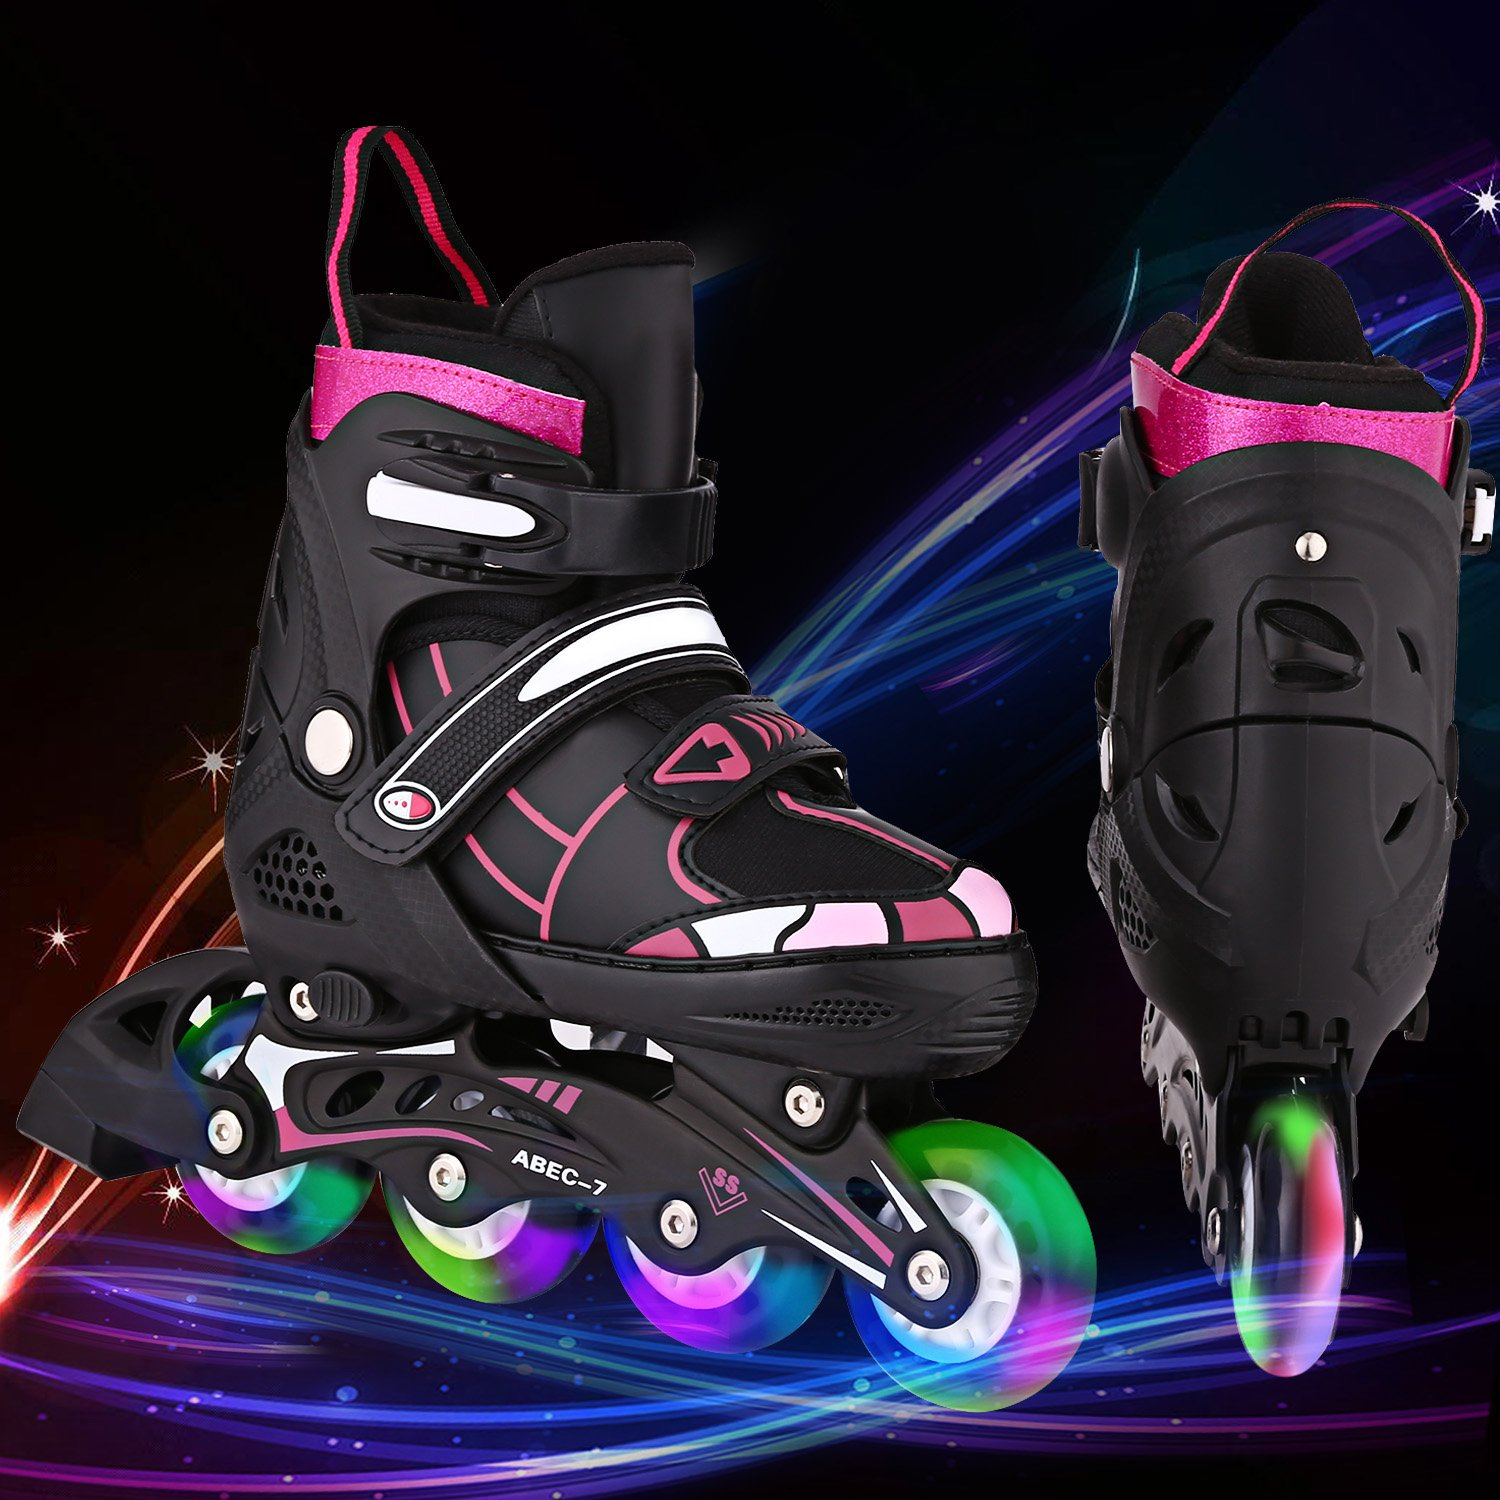 Aceshin Inline Skates Kids, Rollerblades Adjustable Illuminating Wheels, Safe and Durable for Boys and Girls (R3-Black&Red, M-2-5)